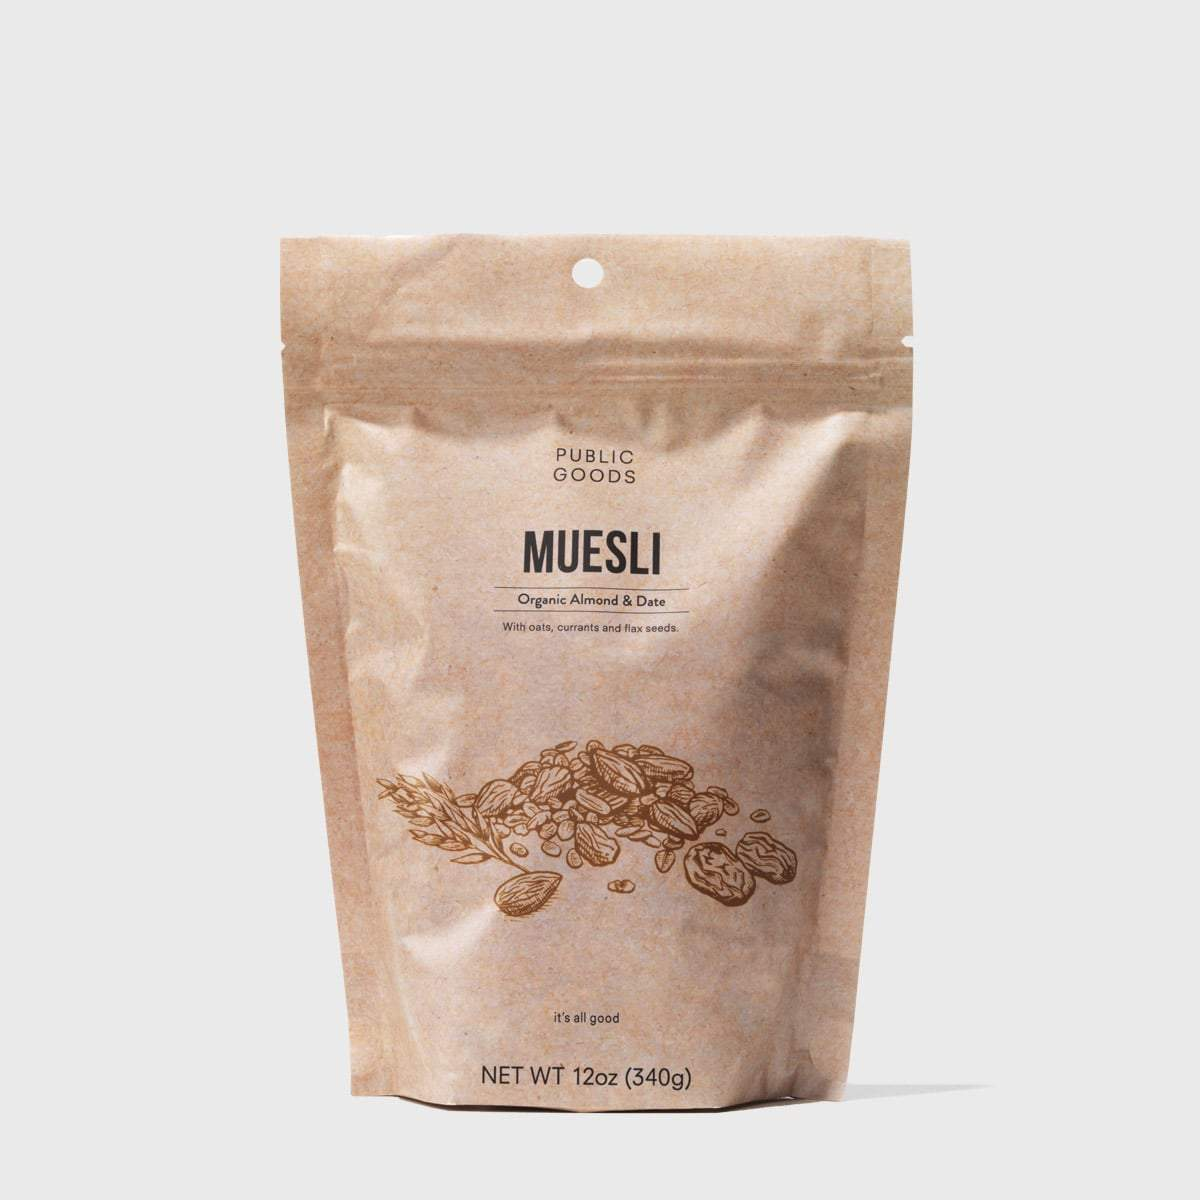 bag of organic almond and date muesli